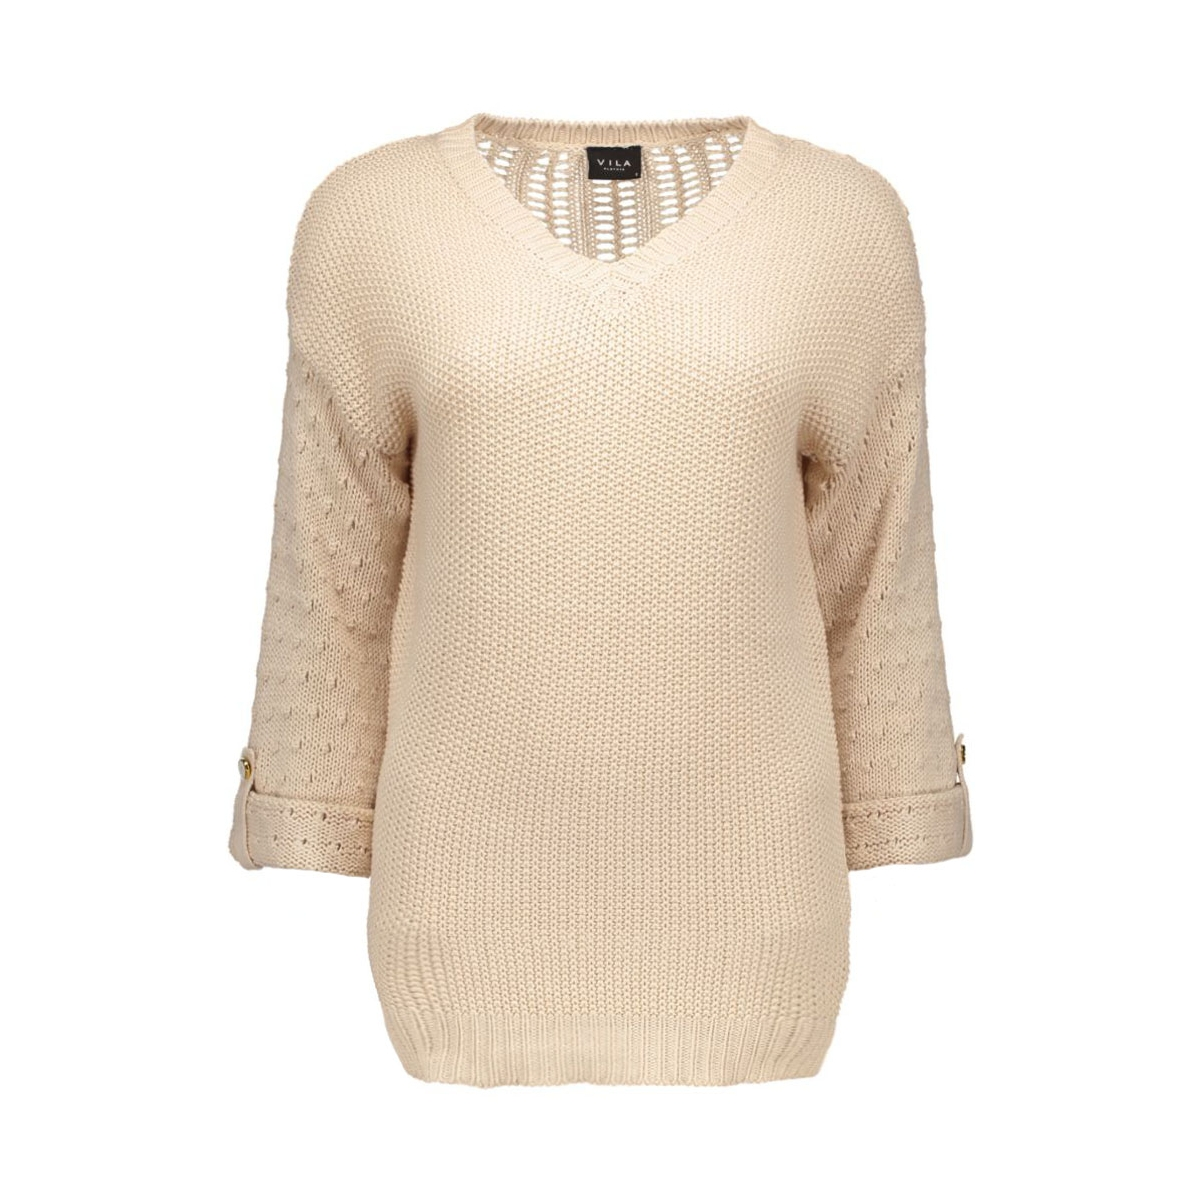 vivera knit top pb 14035487 vila trui shifting sand/with gold